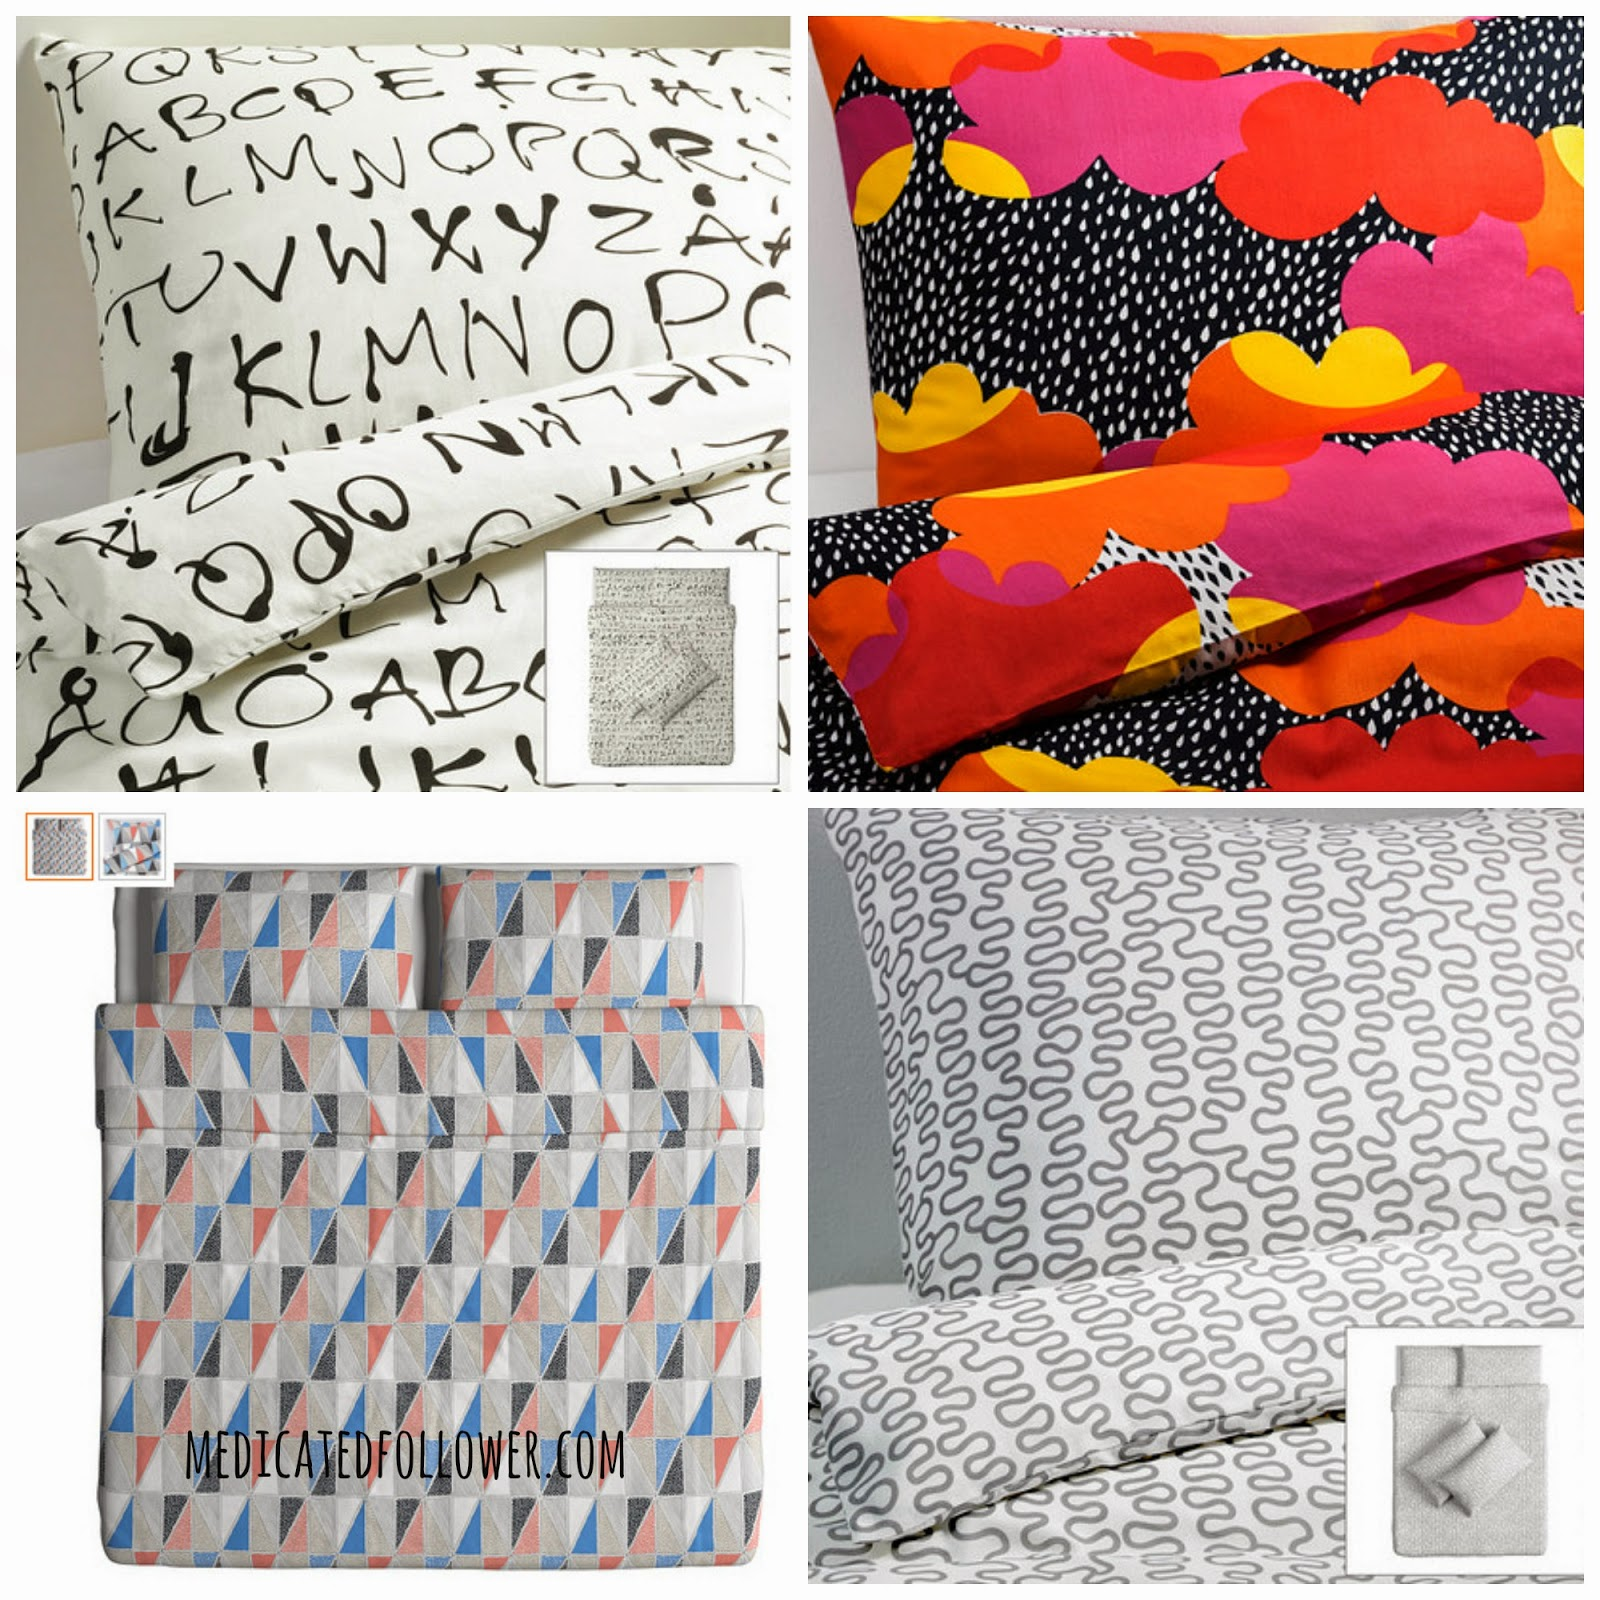 Ikea bedding covers.  Monochrome. Geometric. Medicated Follower of Fashion.  Bedding.